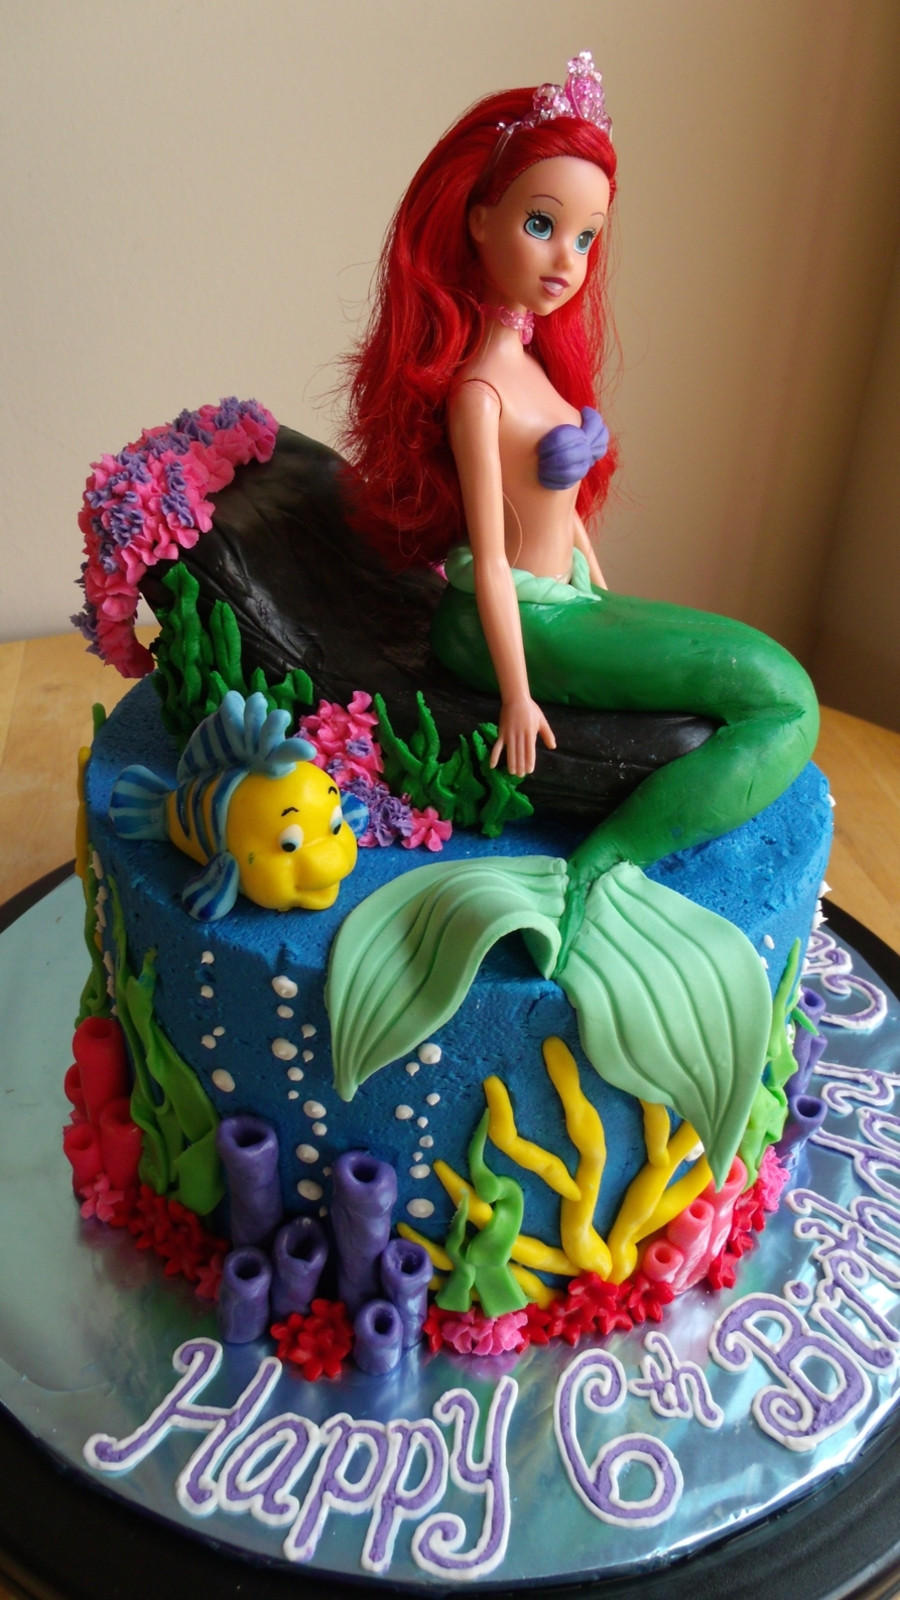 Little Mermaid Birthday Cake  The Little Mermaid Cake And Cupcakes CakeCentral